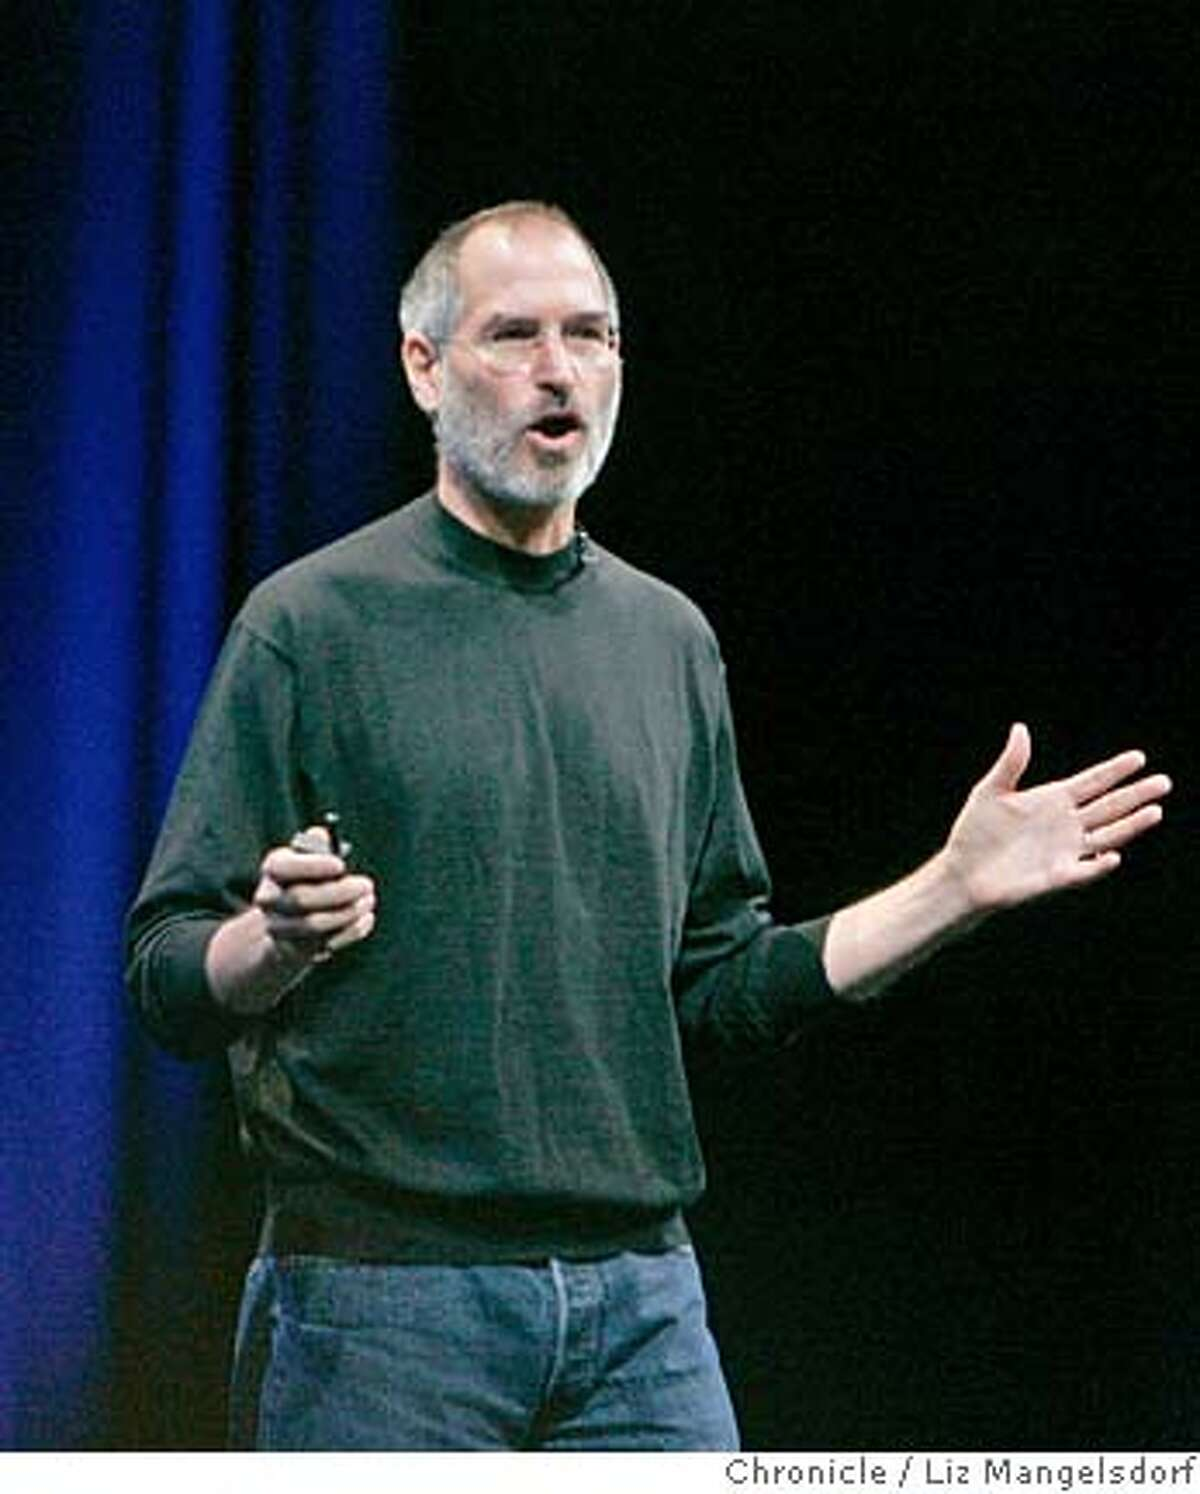 apple08_lm002.JPG Apple CEo Steve Jobs introduces the new Mac operating system at the company's Worldwide Developers conference at Moscone Center in San Francisco on August 7, 2006. Liz Mangelsdorf /The Chronicle